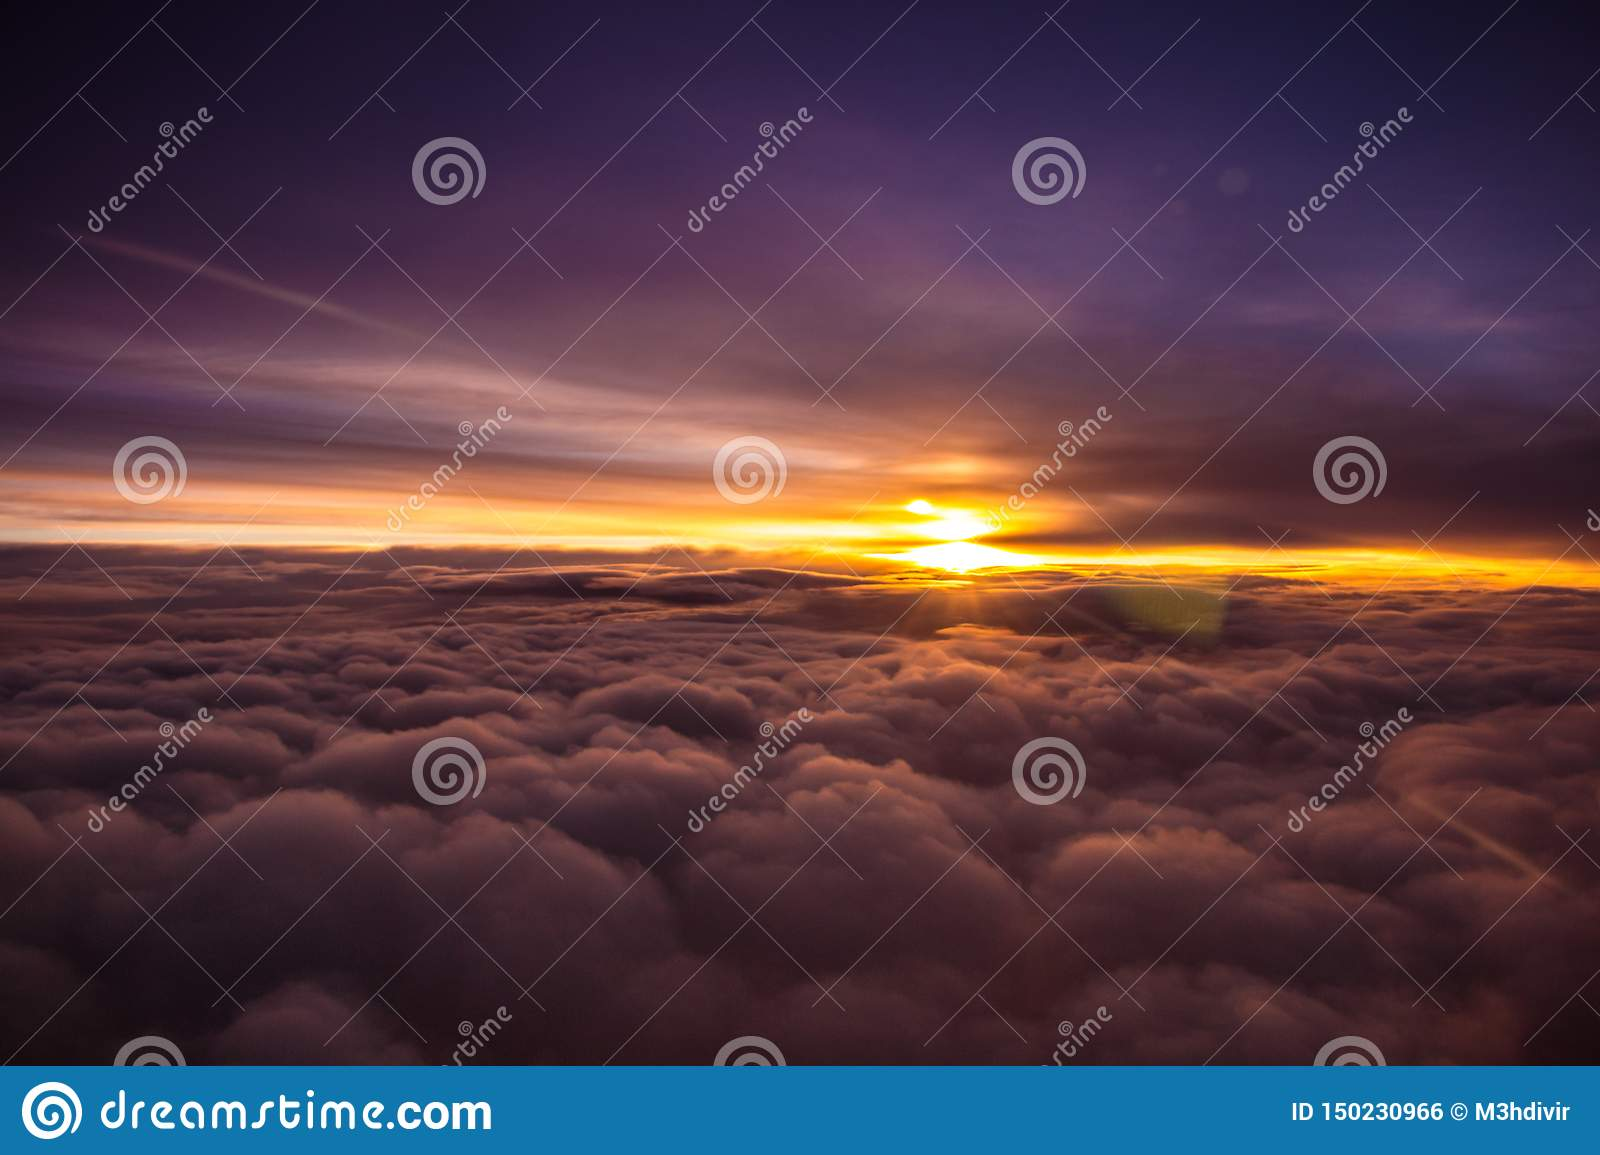 Amazing and beautiful sunset above the clouds with dramatic clouds